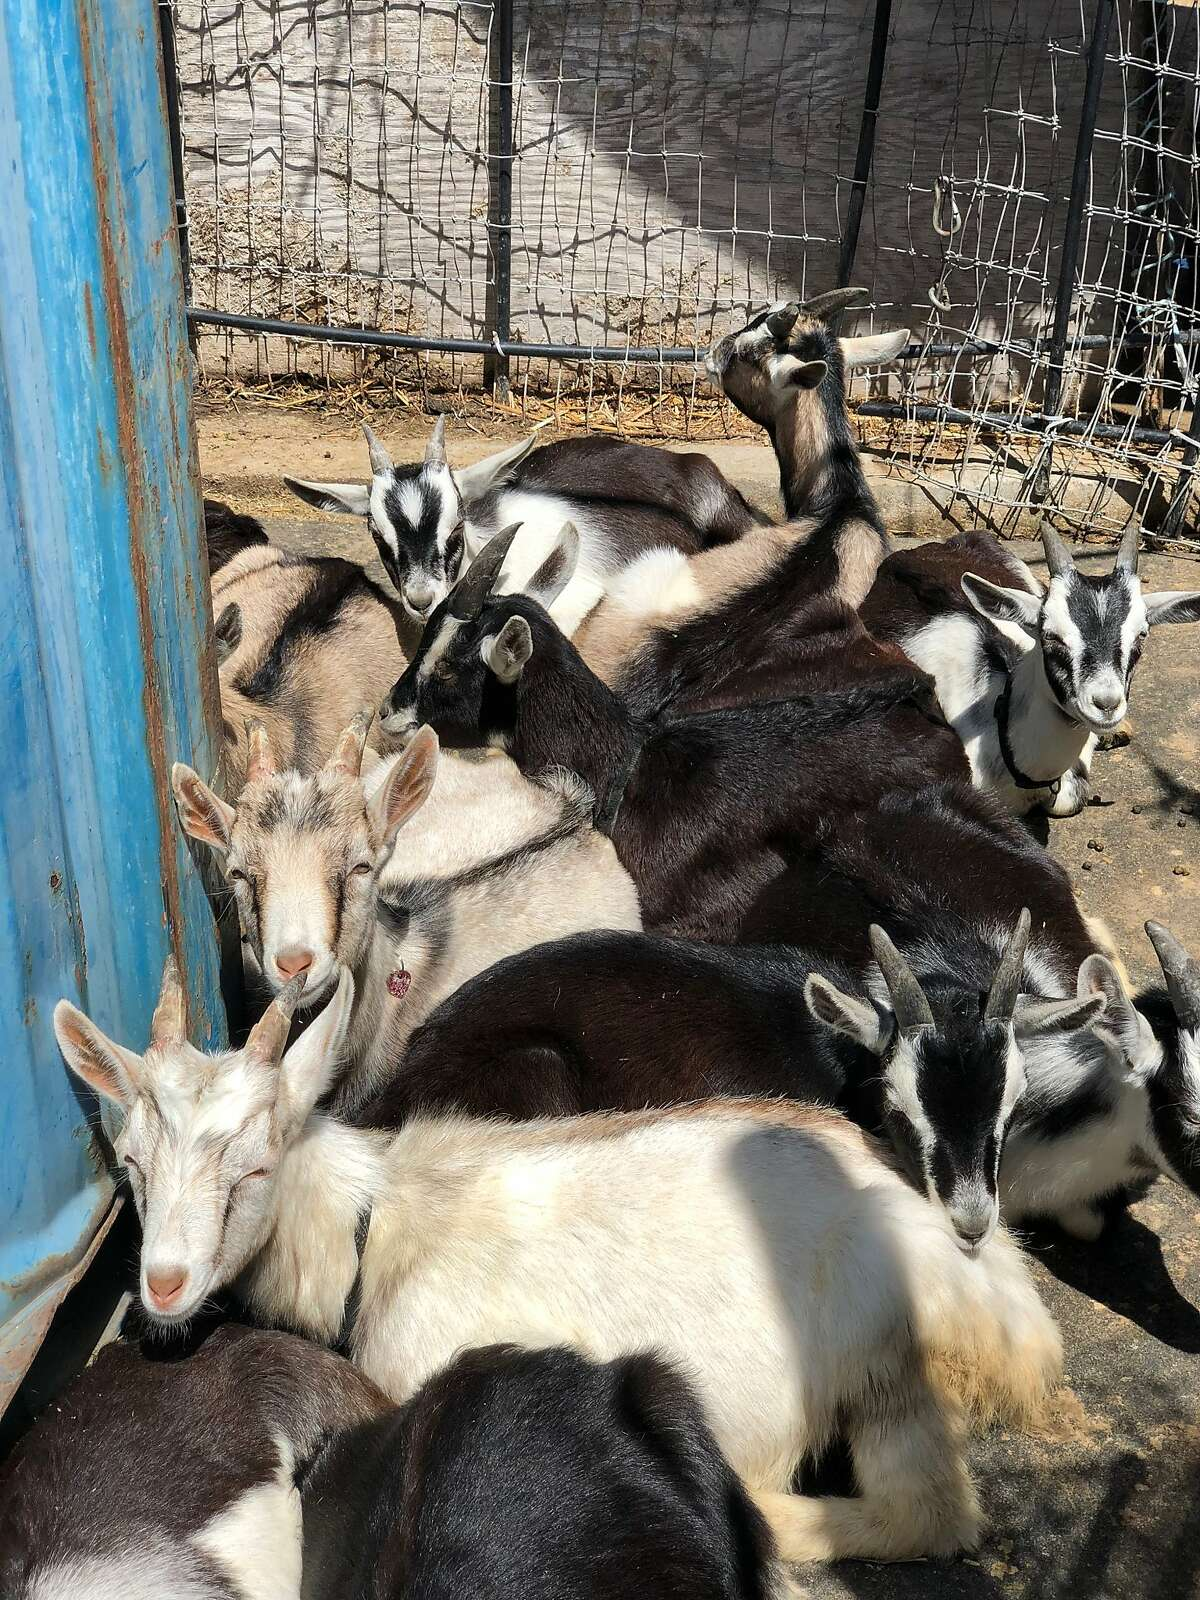 Several hard-working goats for City Grazing, a Bayview-based nonprofit that provides goat workers to clear hard-to-navigate spaces for city agencies, hospitals, and homeowners in San Francisco.